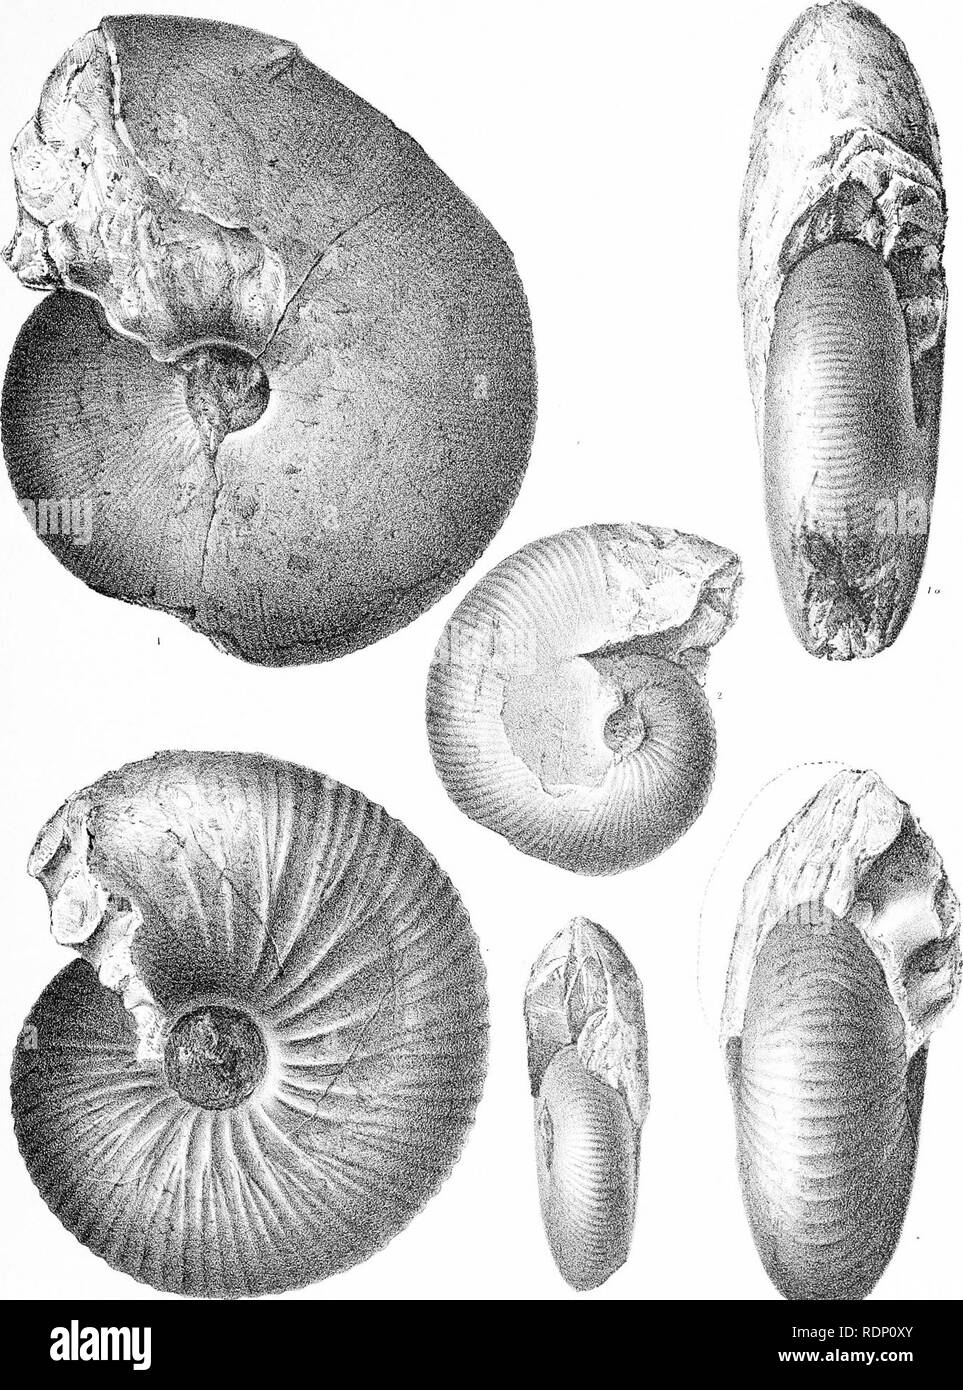 . Fauna of Baluchistan and N. W. frontier of India. Vol I. The Jurassic fauna. Paleontology; Paleontology; Paleontology. JURASSIC FOSSILS OF BALUCHISTAN. Geological Survey of India Pl.VIT.. Kali Dhaji Chandra, Del. & LiUi , Printed a,t tilt Geo!. Suj-v, Office-. Please note that these images are extracted from scanned page images that may have been digitally enhanced for readability - coloration and appearance of these illustrations may not perfectly resemble the original work.. Noetling, Fritz, b. 1857. Calcutta, Geological Survey Office; [etc. , etc. ] - Stock Image